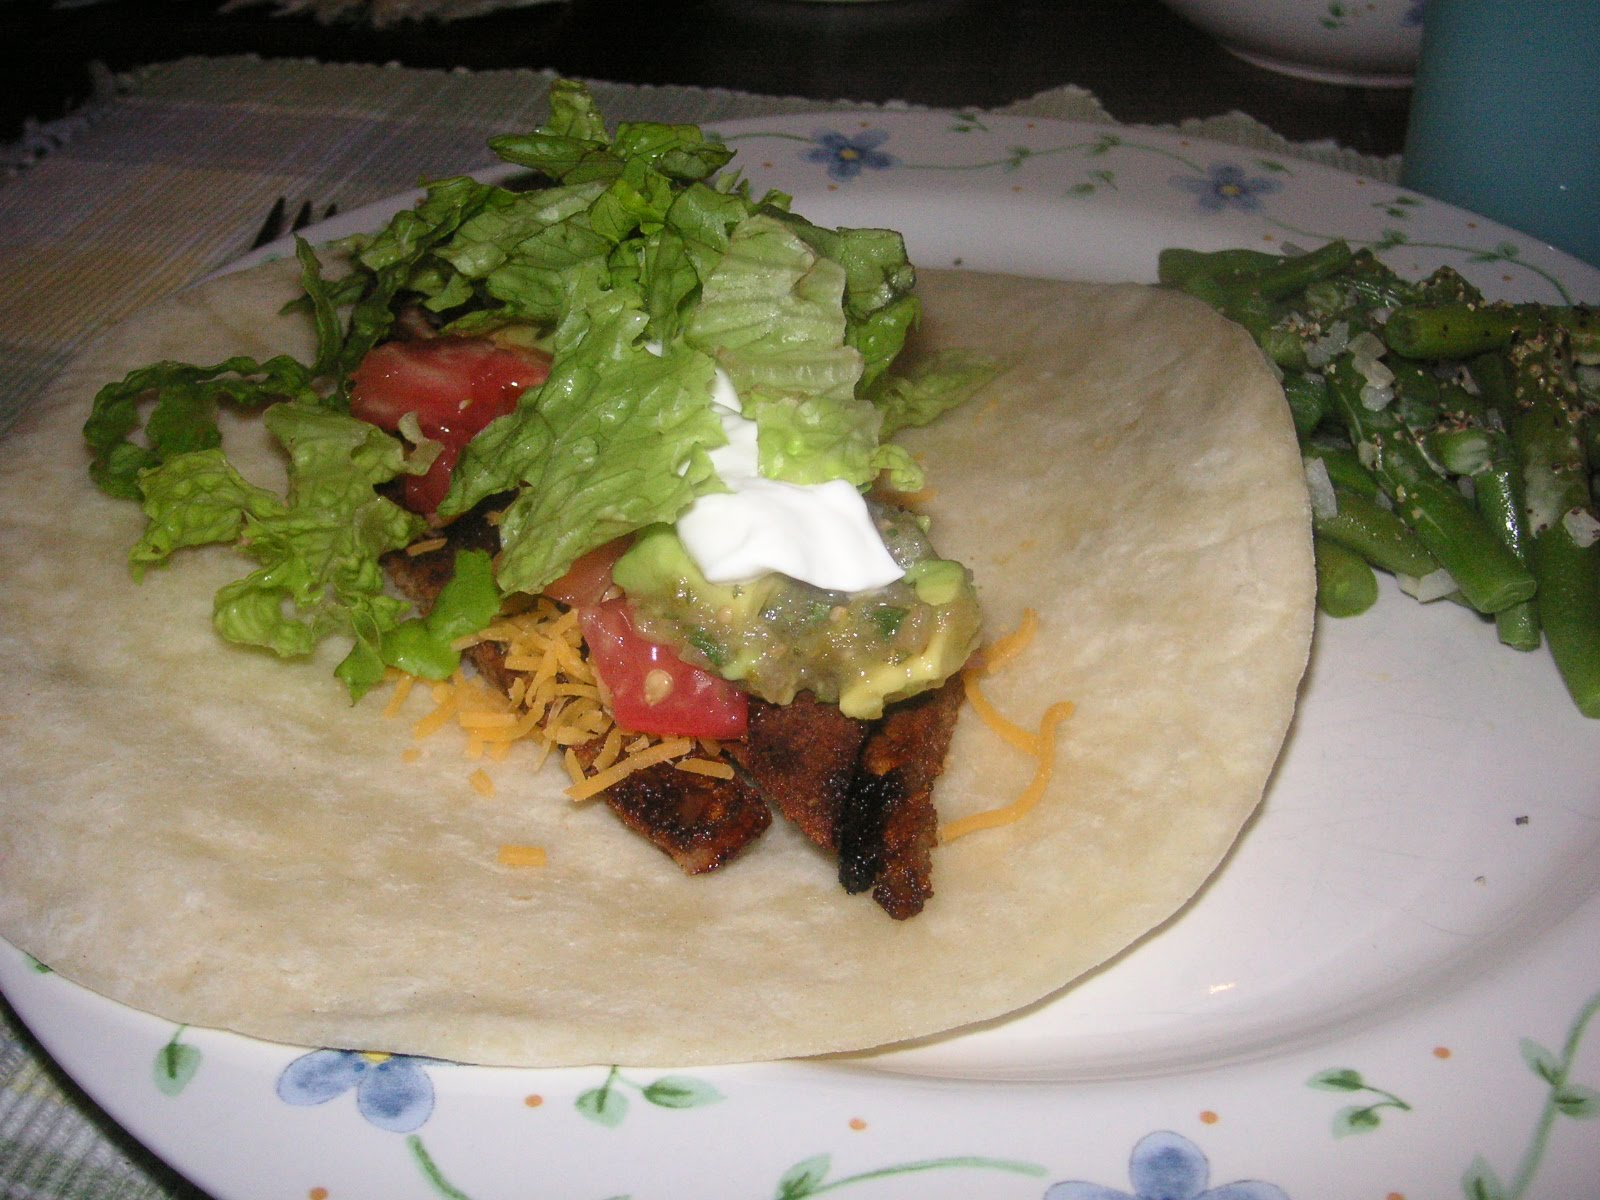 Addictive Allens: Chile-rubbed Steak Tacos/Tomatillo Avocado Salsa